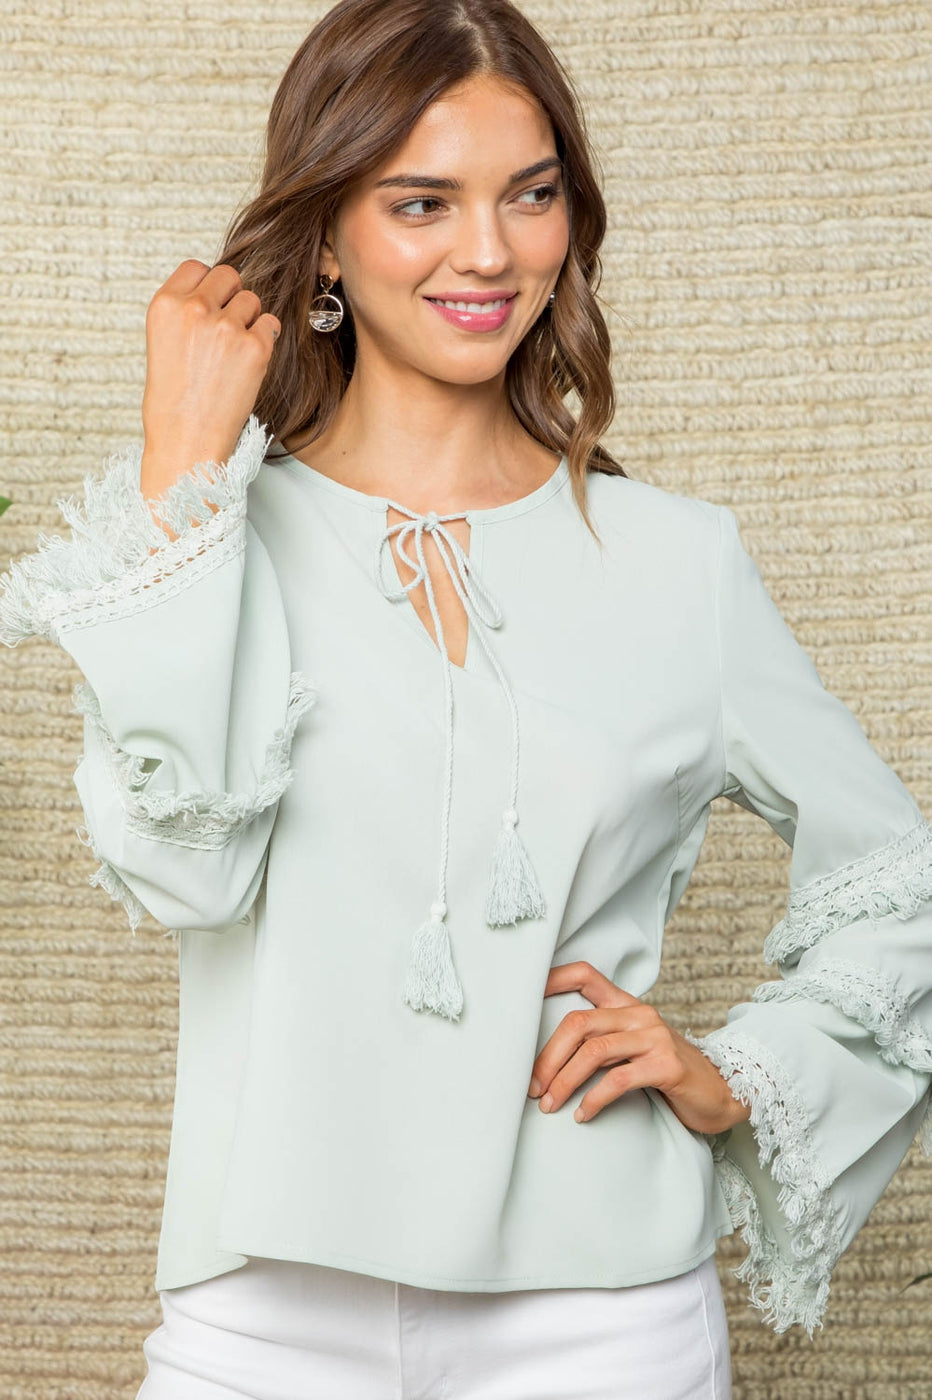 Bell Sleeve with Tassel Accent Neck Tie Solid Top Siin Bees